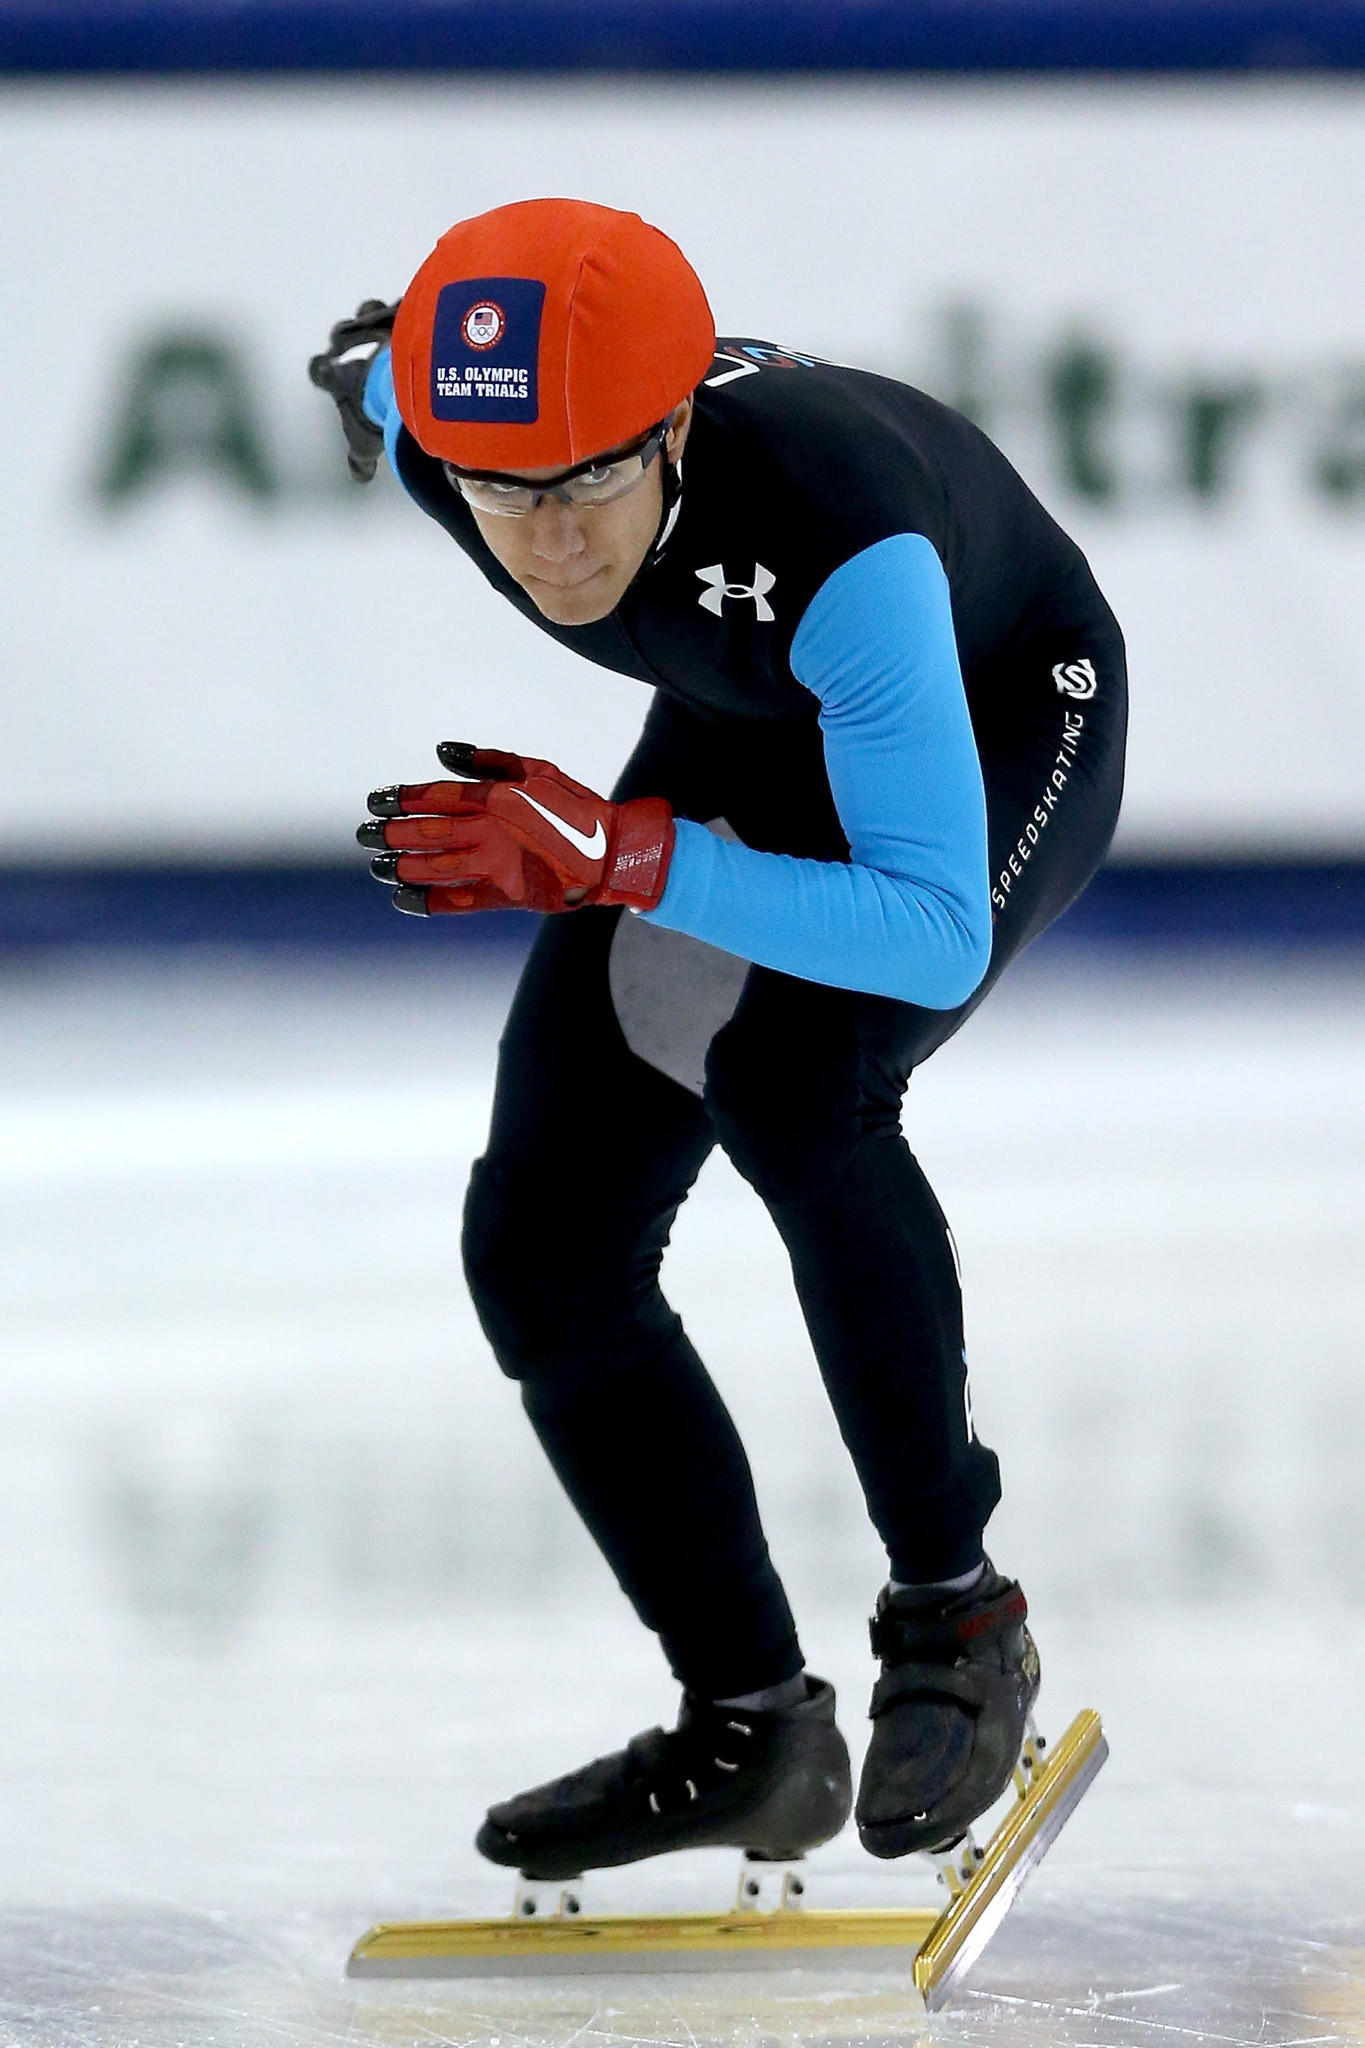 J.R. Celski readies at the start of the first men's 1,500 meter final during the U.S. Olympic Short Track Trials.